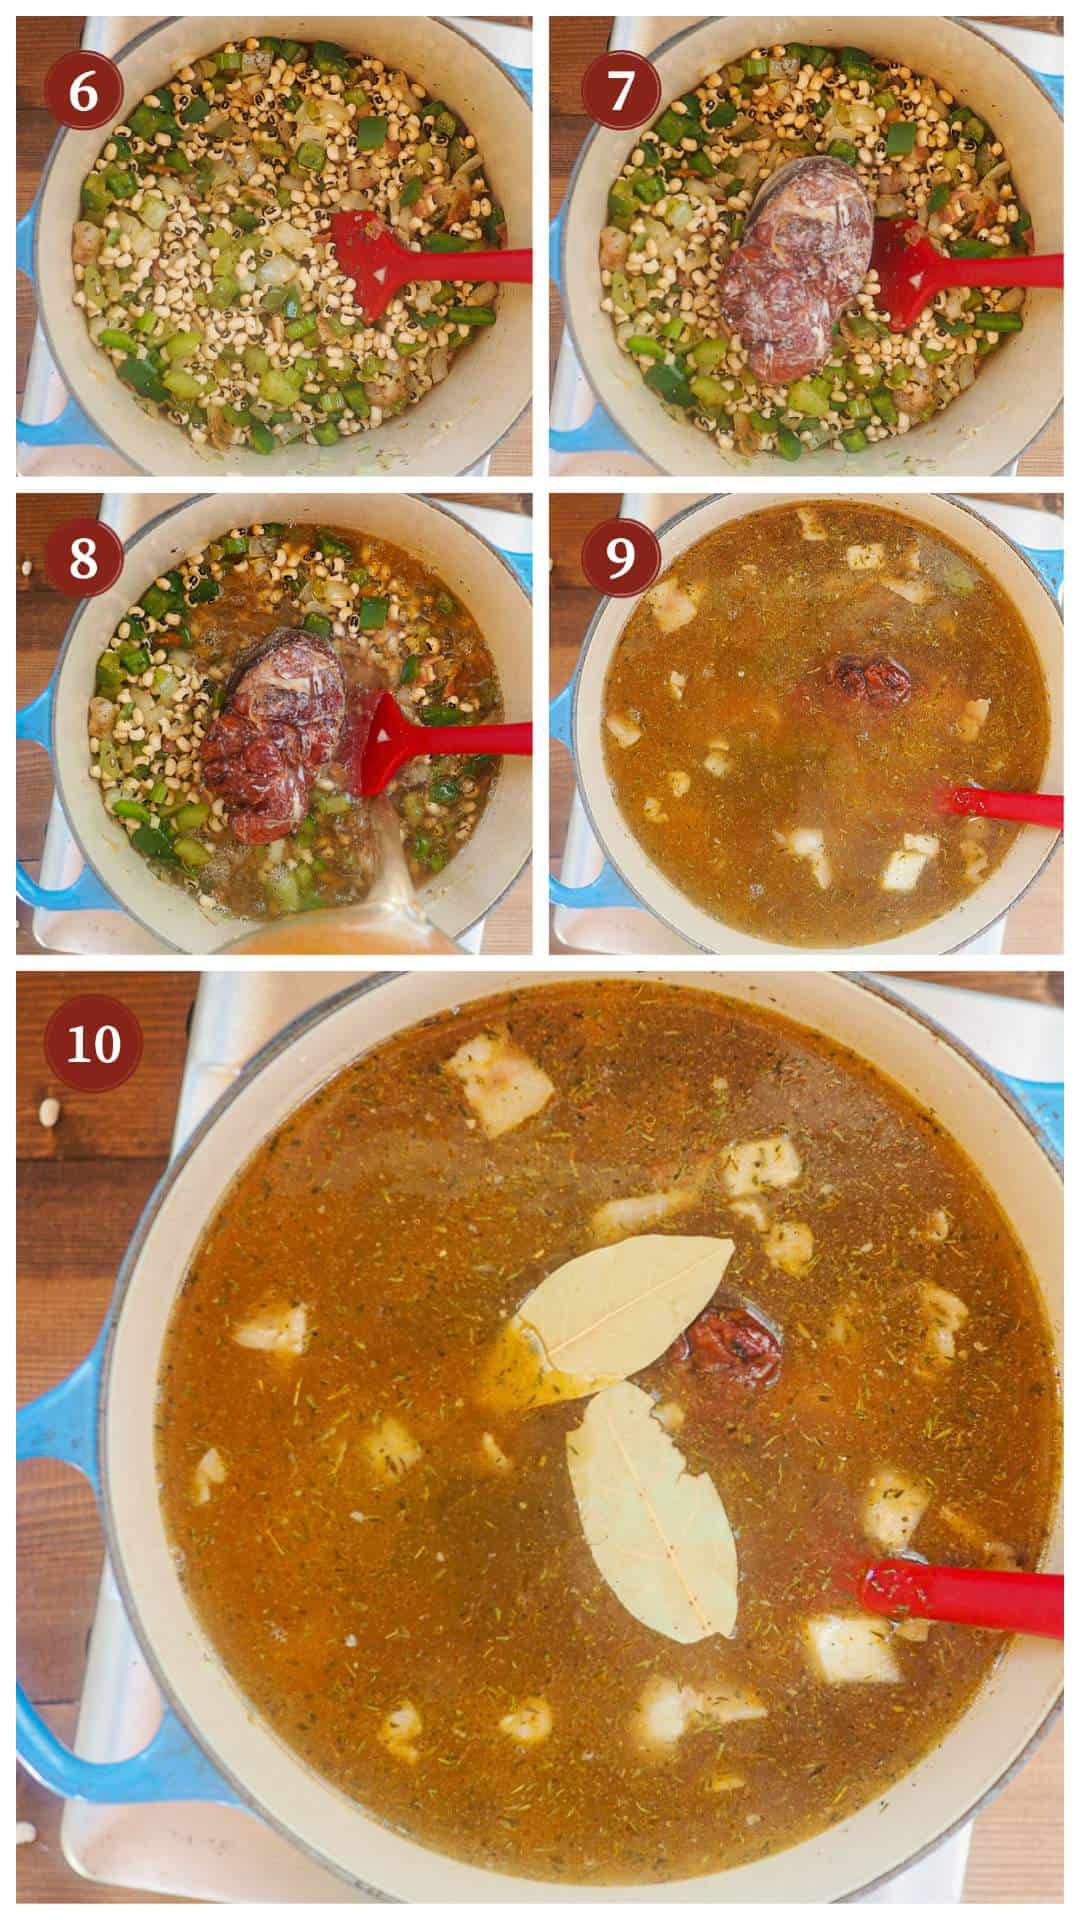 A collage of images showing how to make hoppin john, steps 6 - 10.